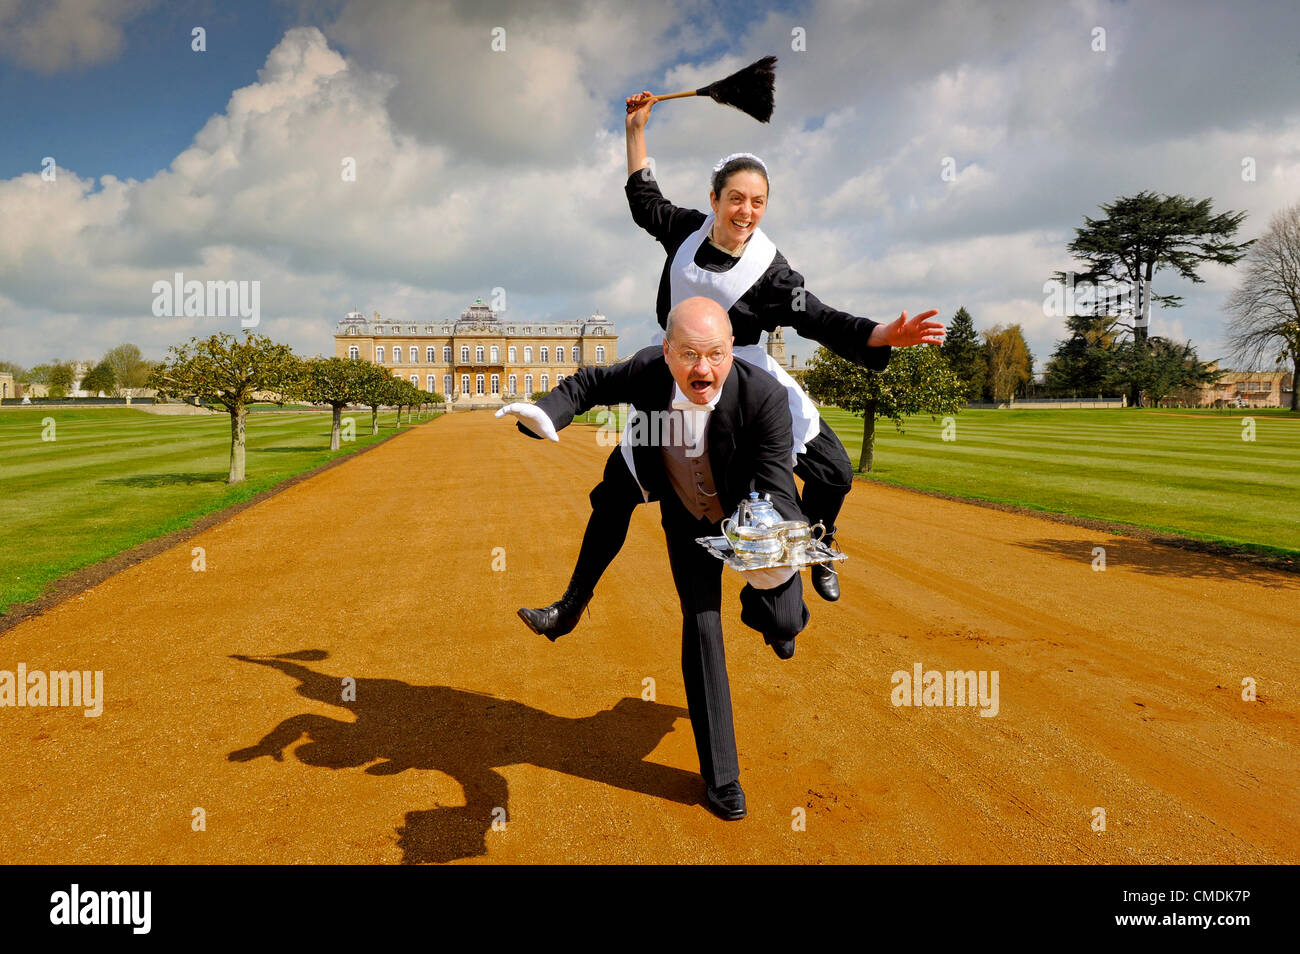 Bedfordshire, UK. Wednesday 25th July 2012. Time travellers go 'Upstairs, Downstairs' at Wrest Park, Bedfordshire, - Stock Image